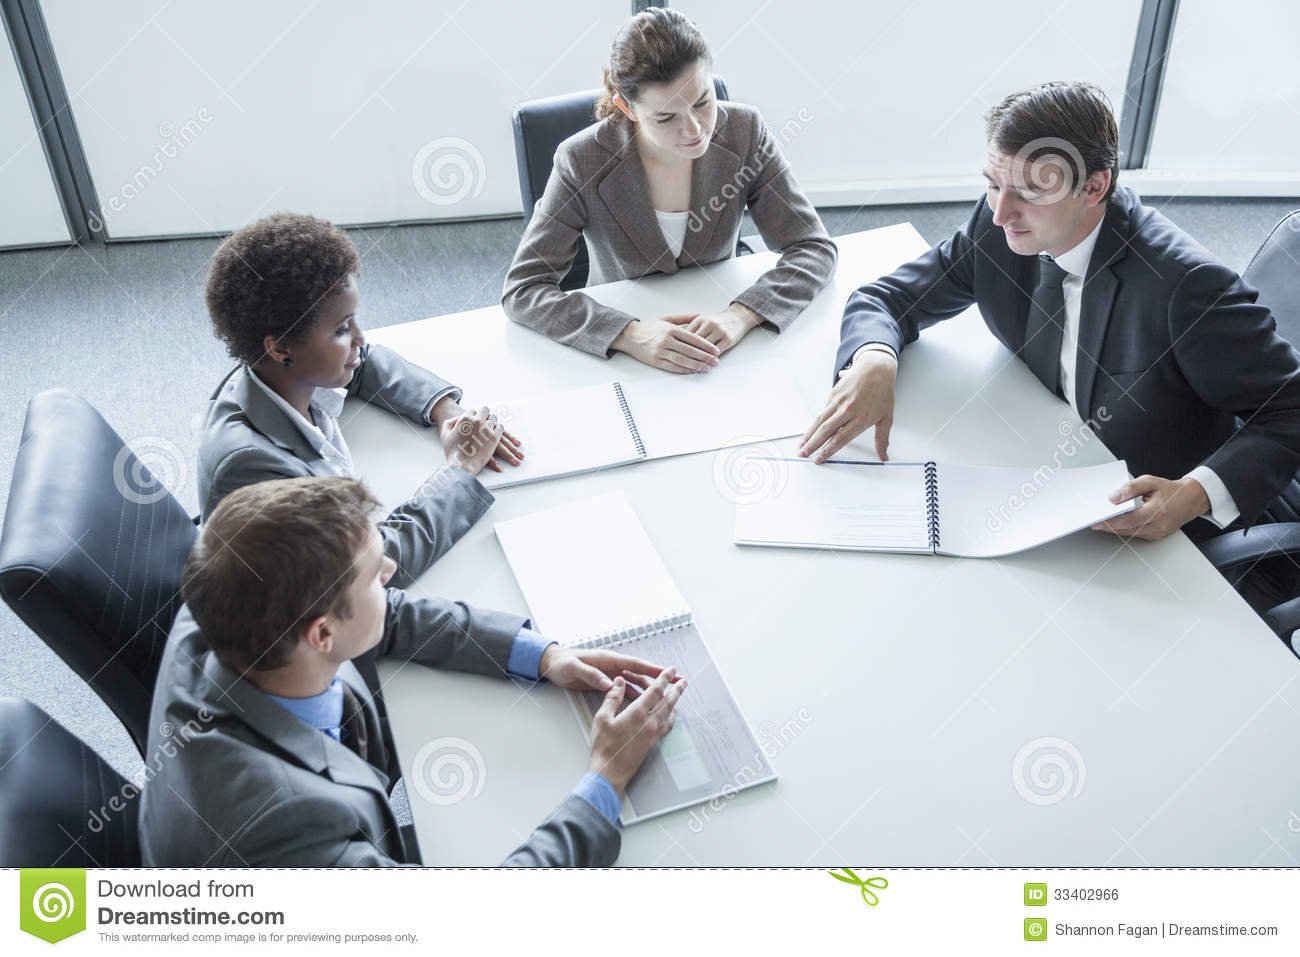 Four Business People Sitting Around A Table And Having A